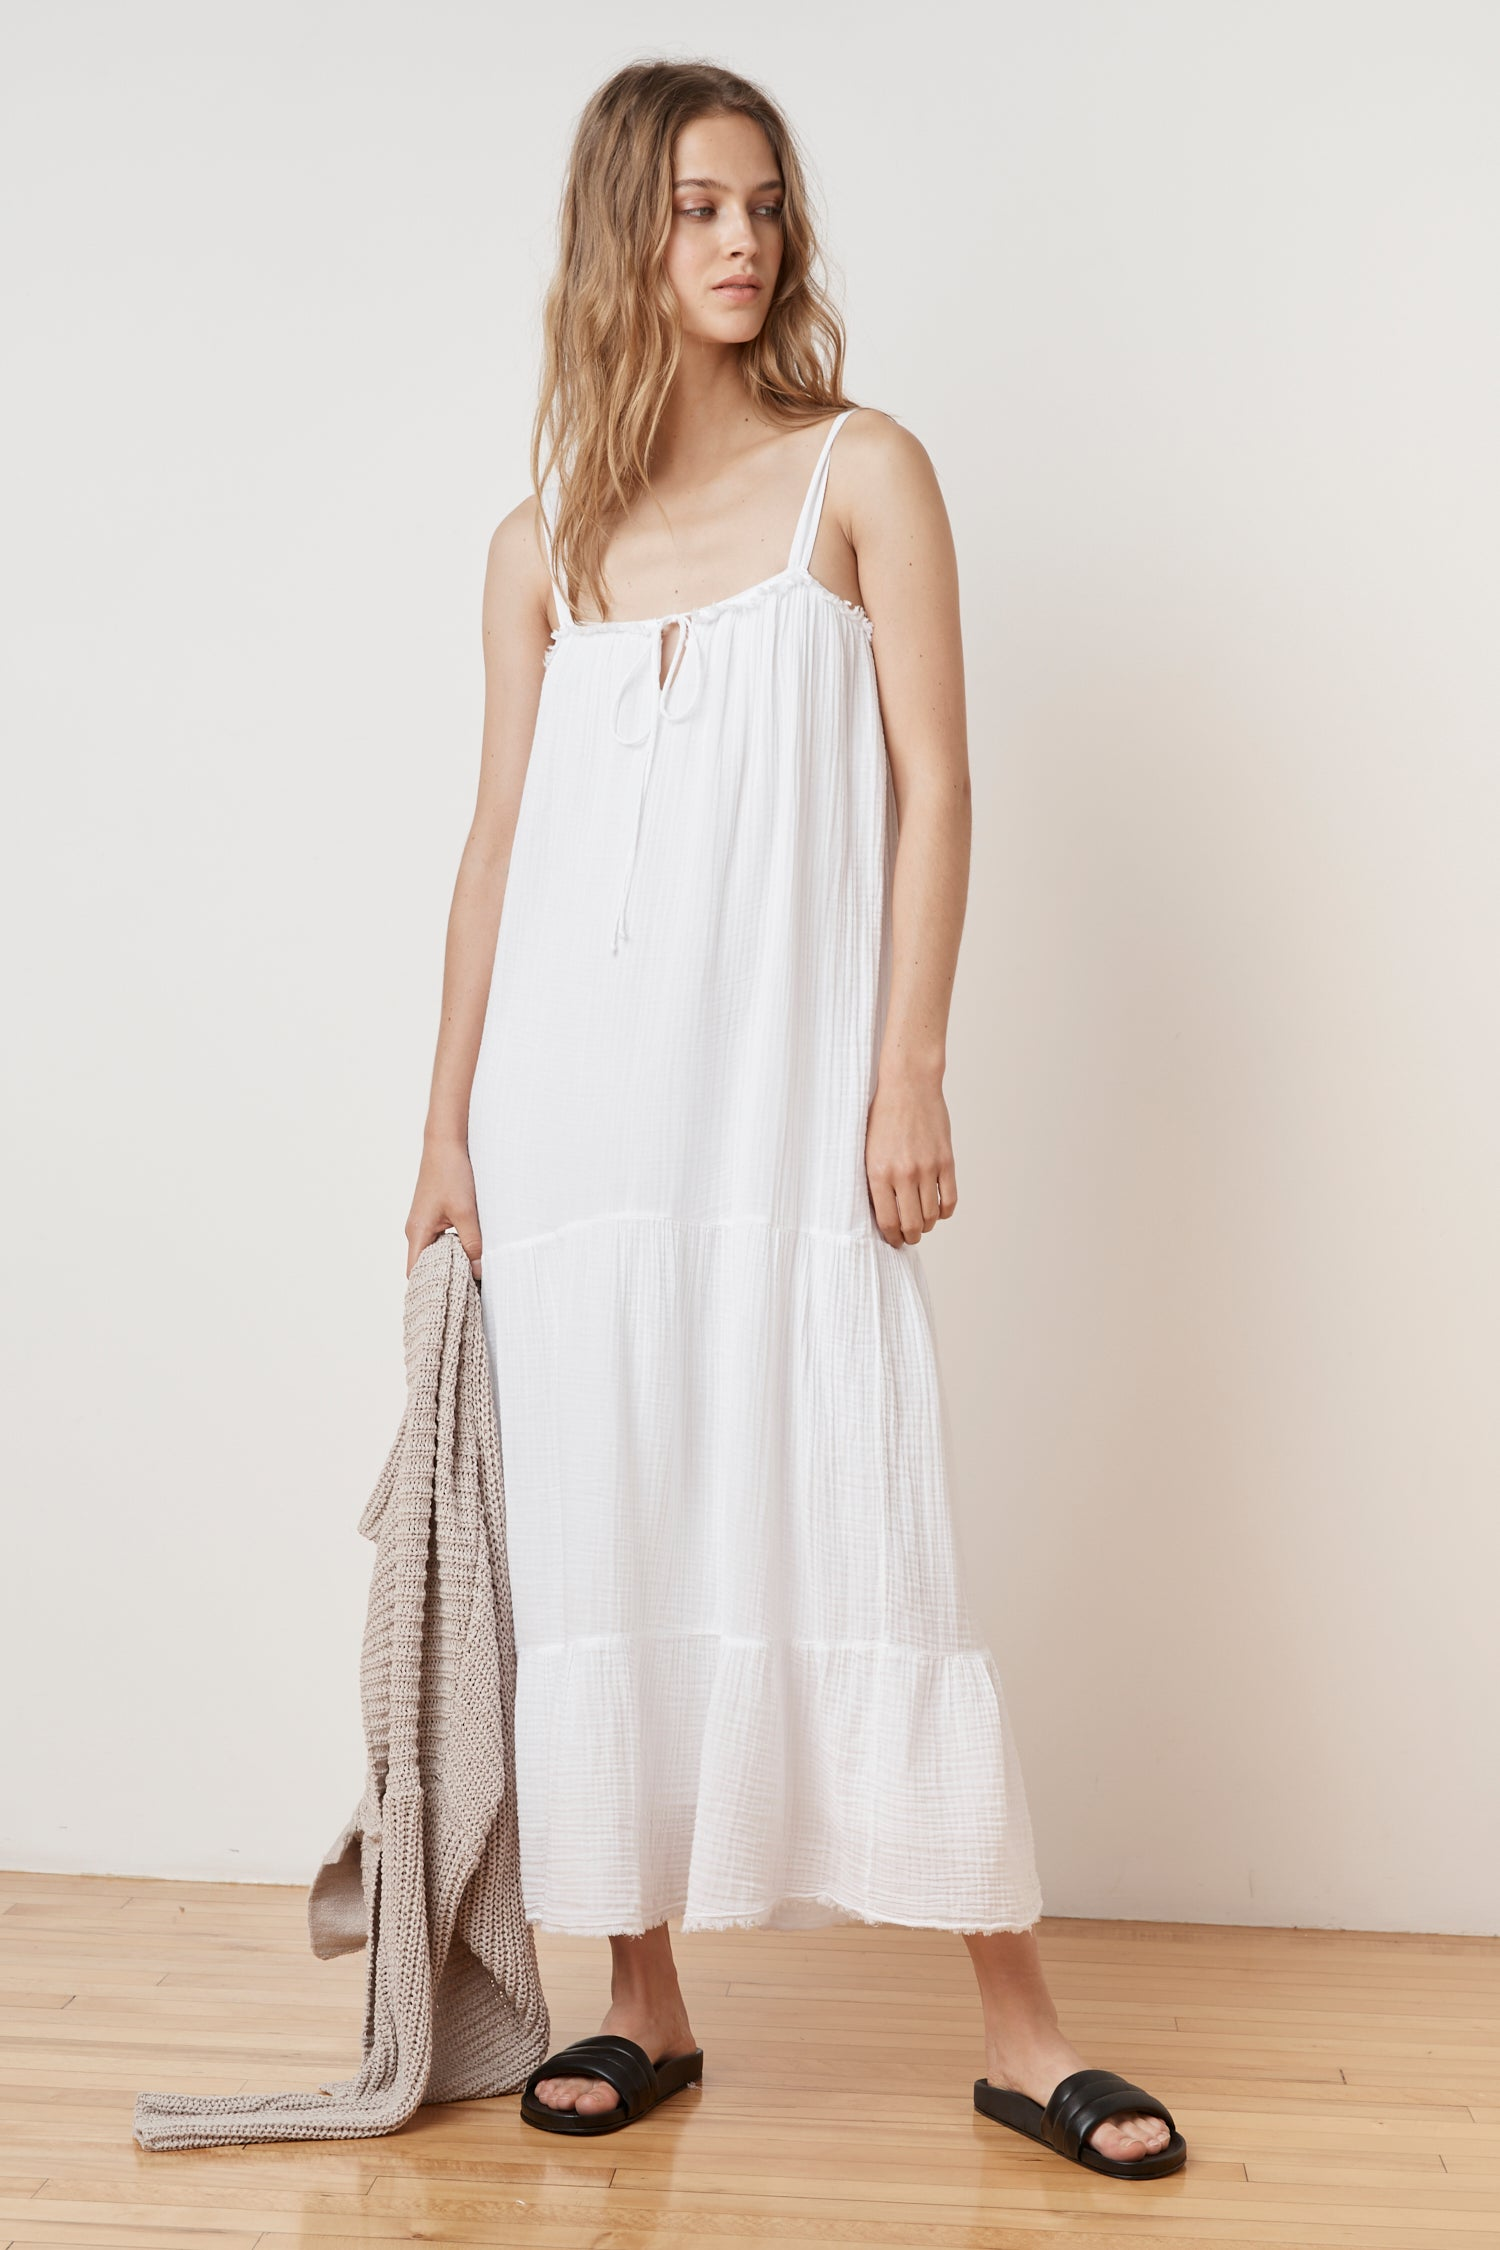 CELINDA SOFT COTTON GAUZE MAXI DRESS IN WHITE